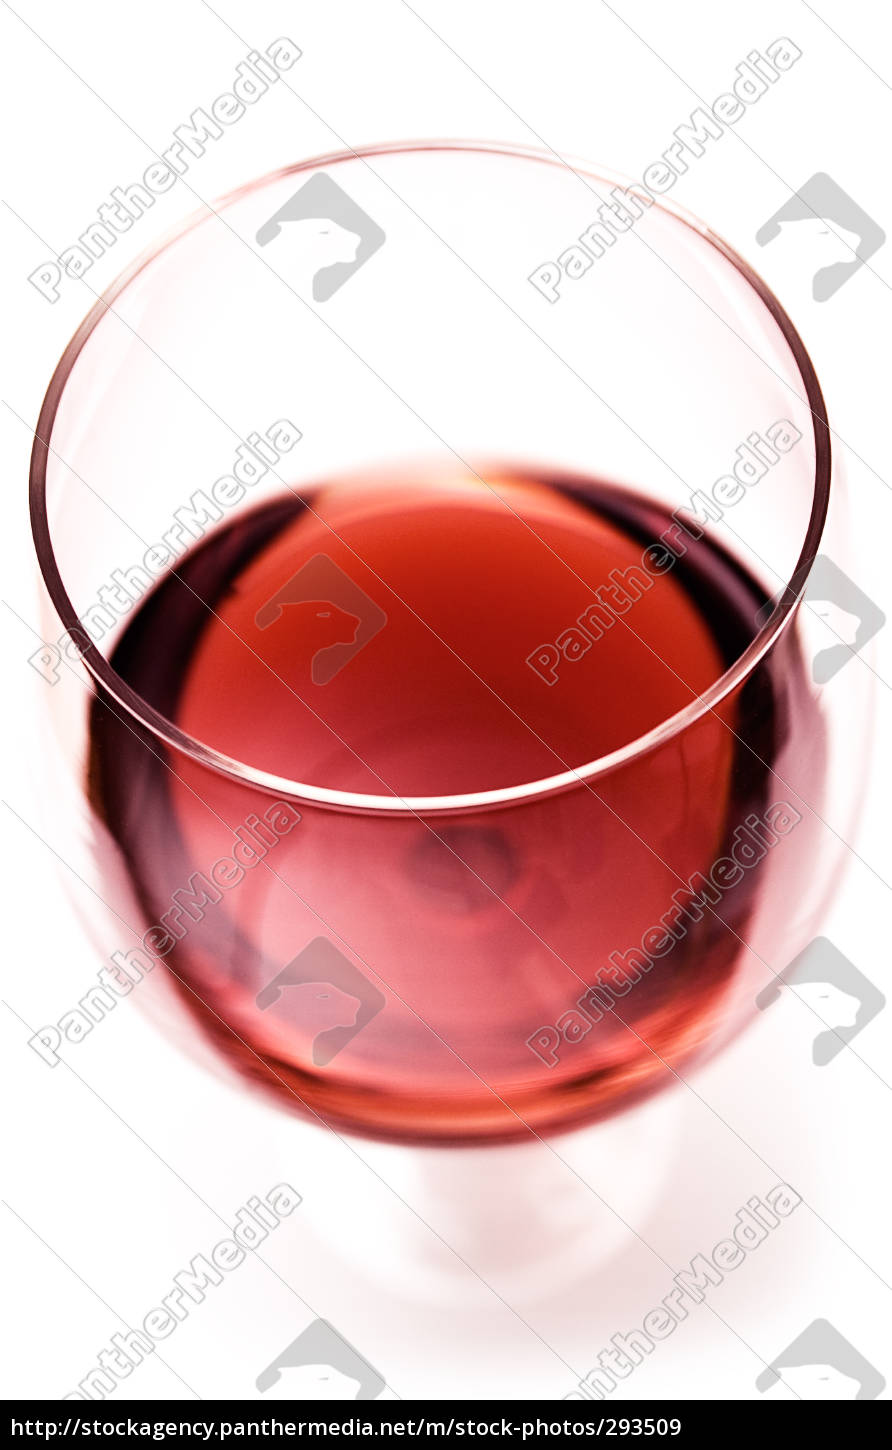 red, wine, glass, top, view - 293509